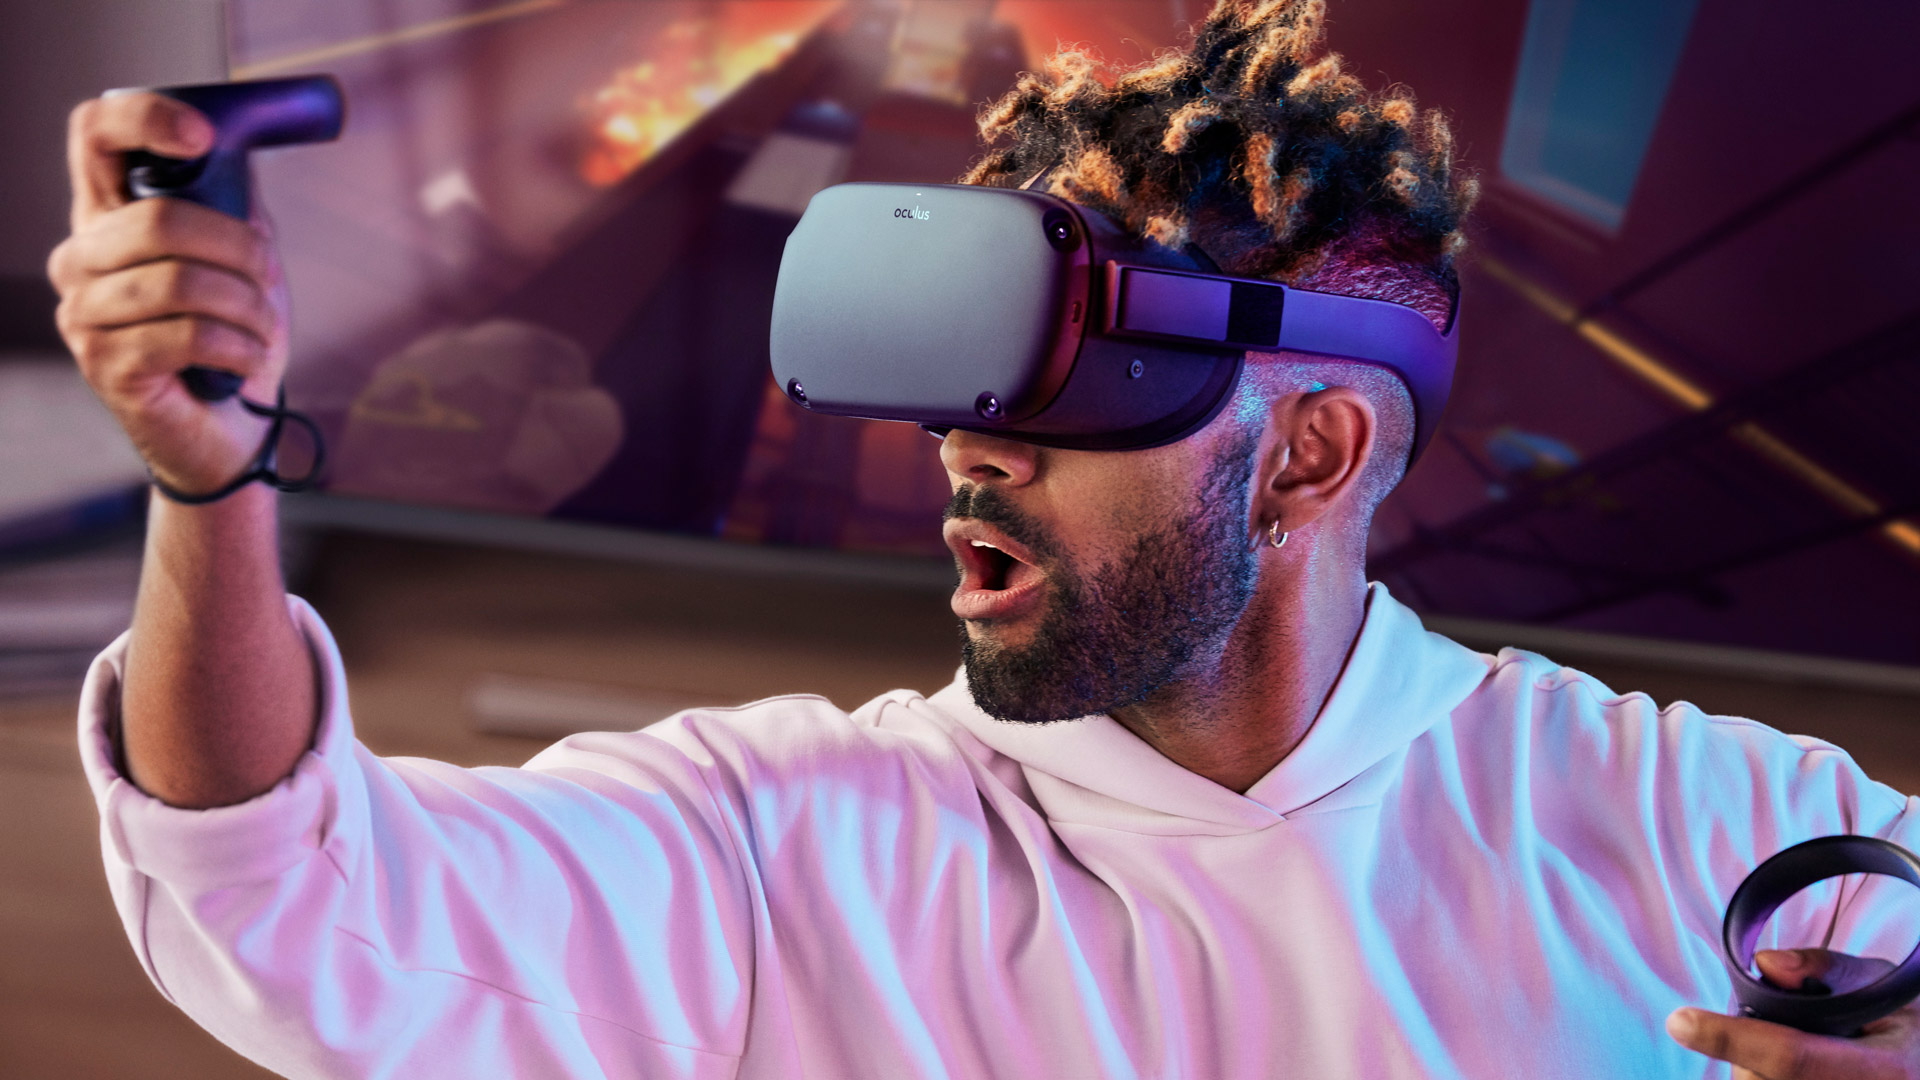 VR Games And Rides